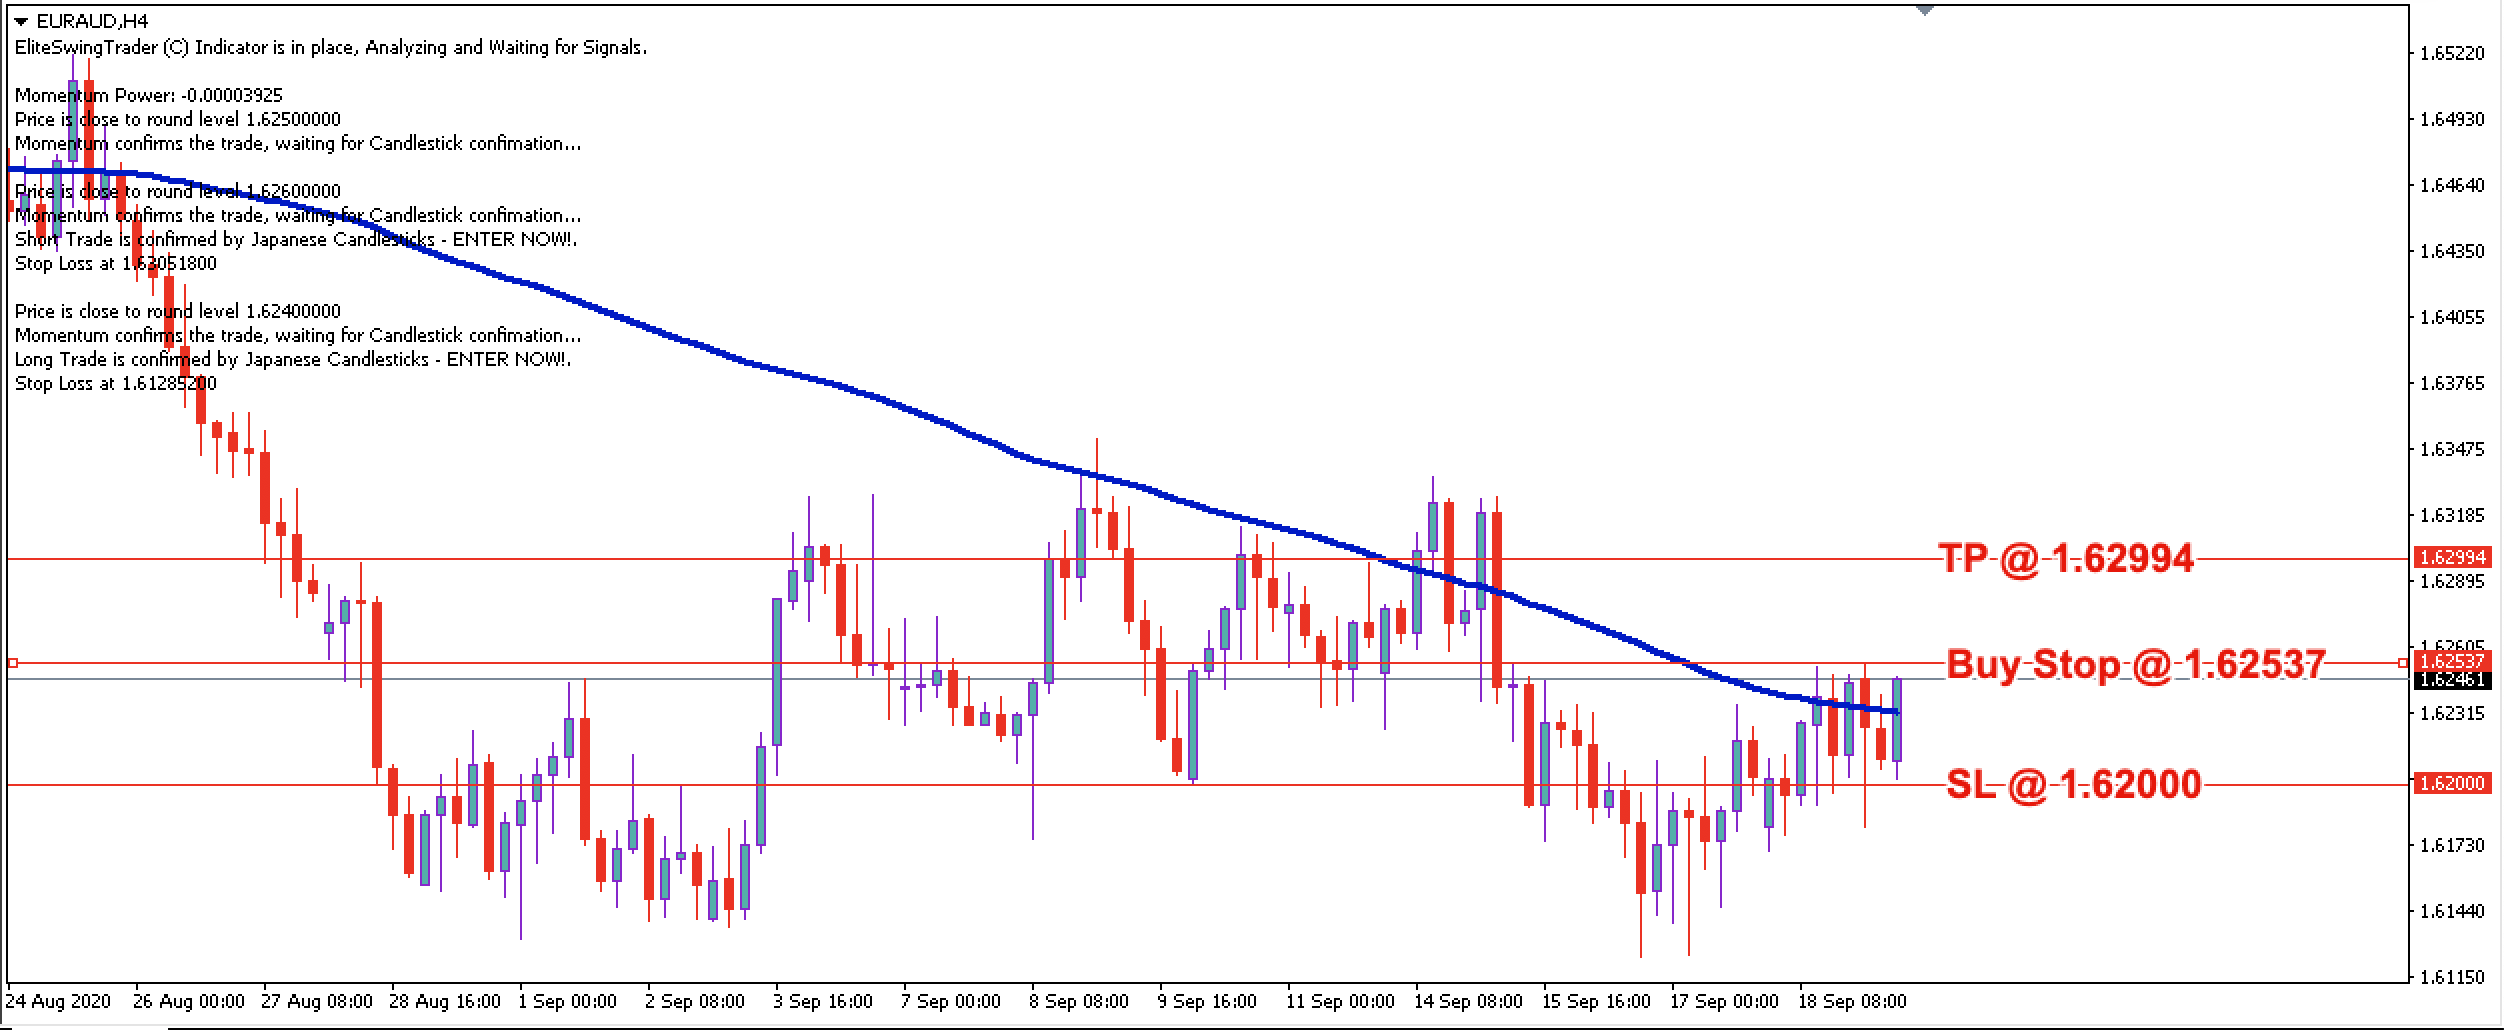 EUR/AUD Daily Price Forecast - 21st Sept 2020